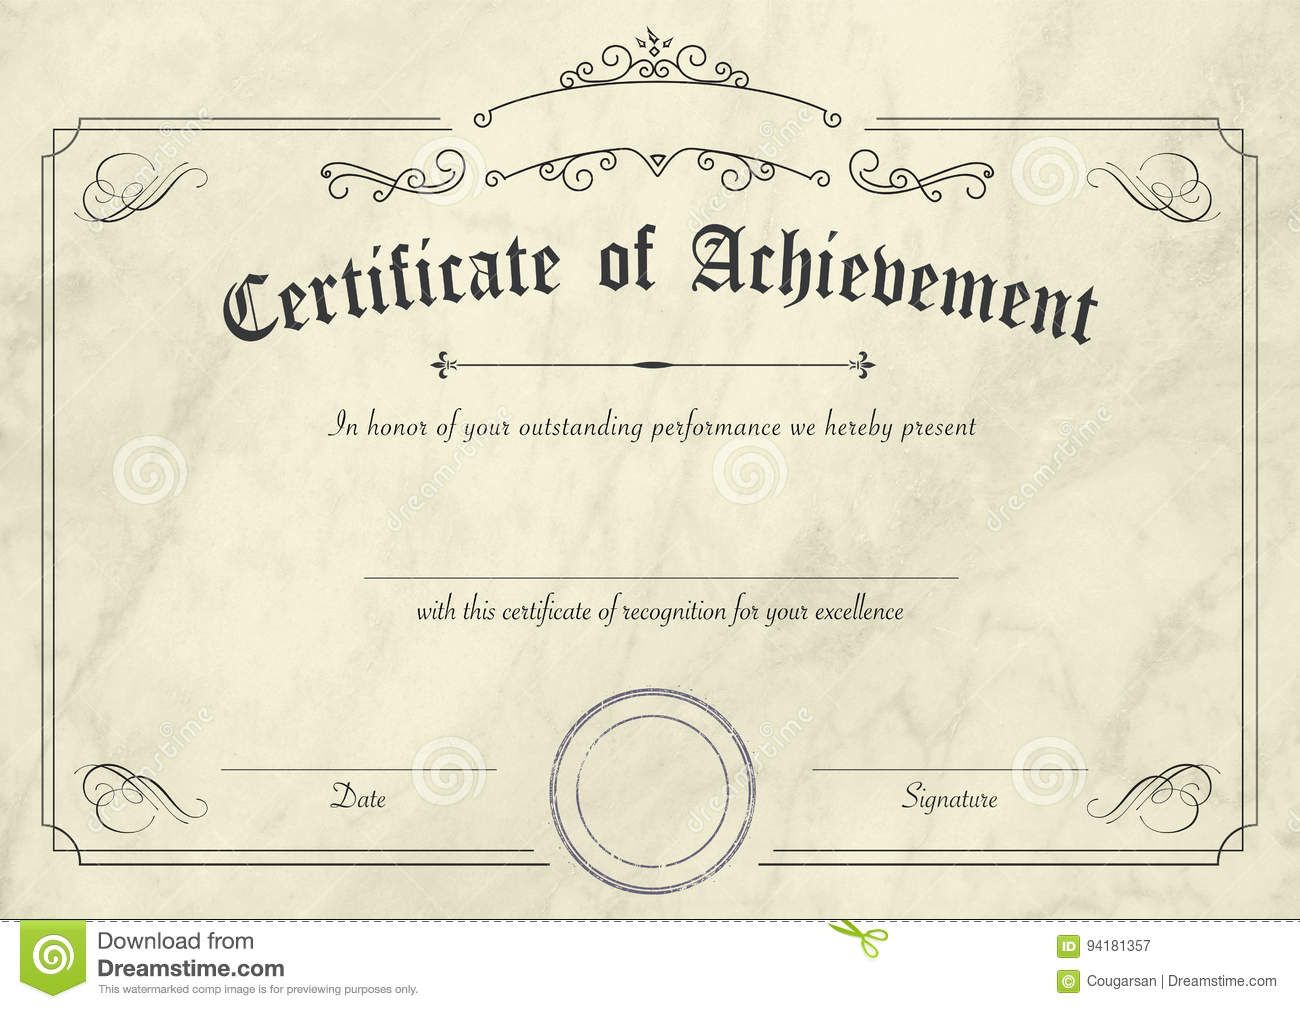 httpswwwstaples 3pcoms7is staples certificate paper 123255 marbig